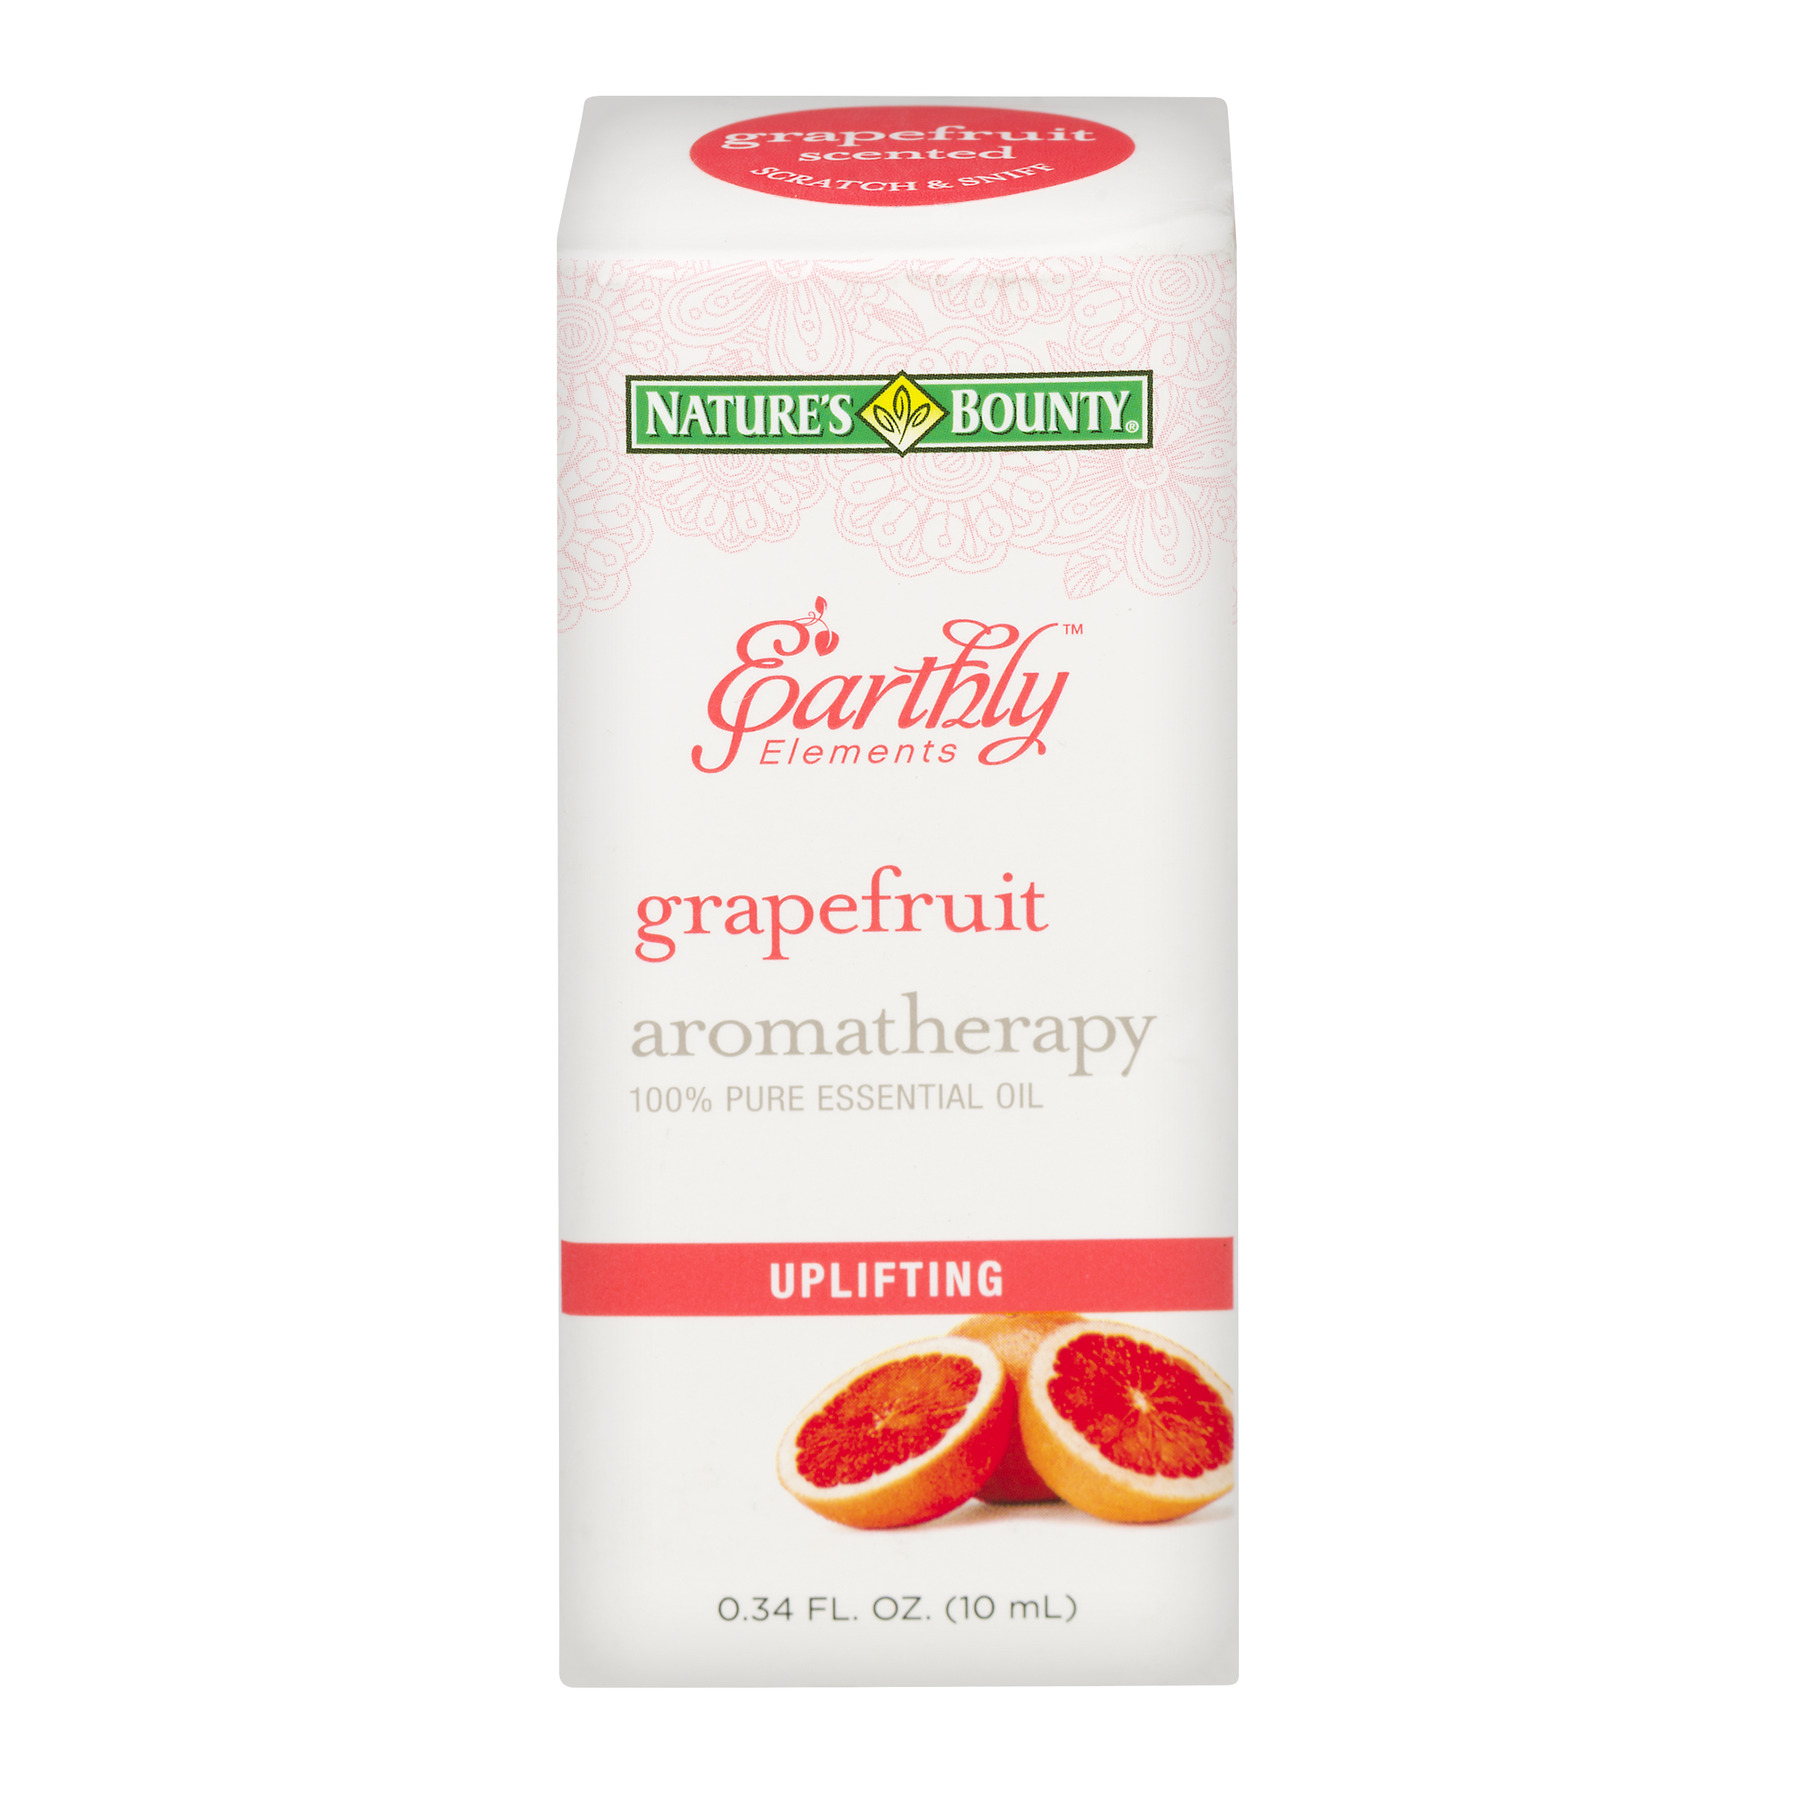 Nature's Bounty® Earthly Elements Grapefruit Essential Oil, 0.34 Fl Oz.